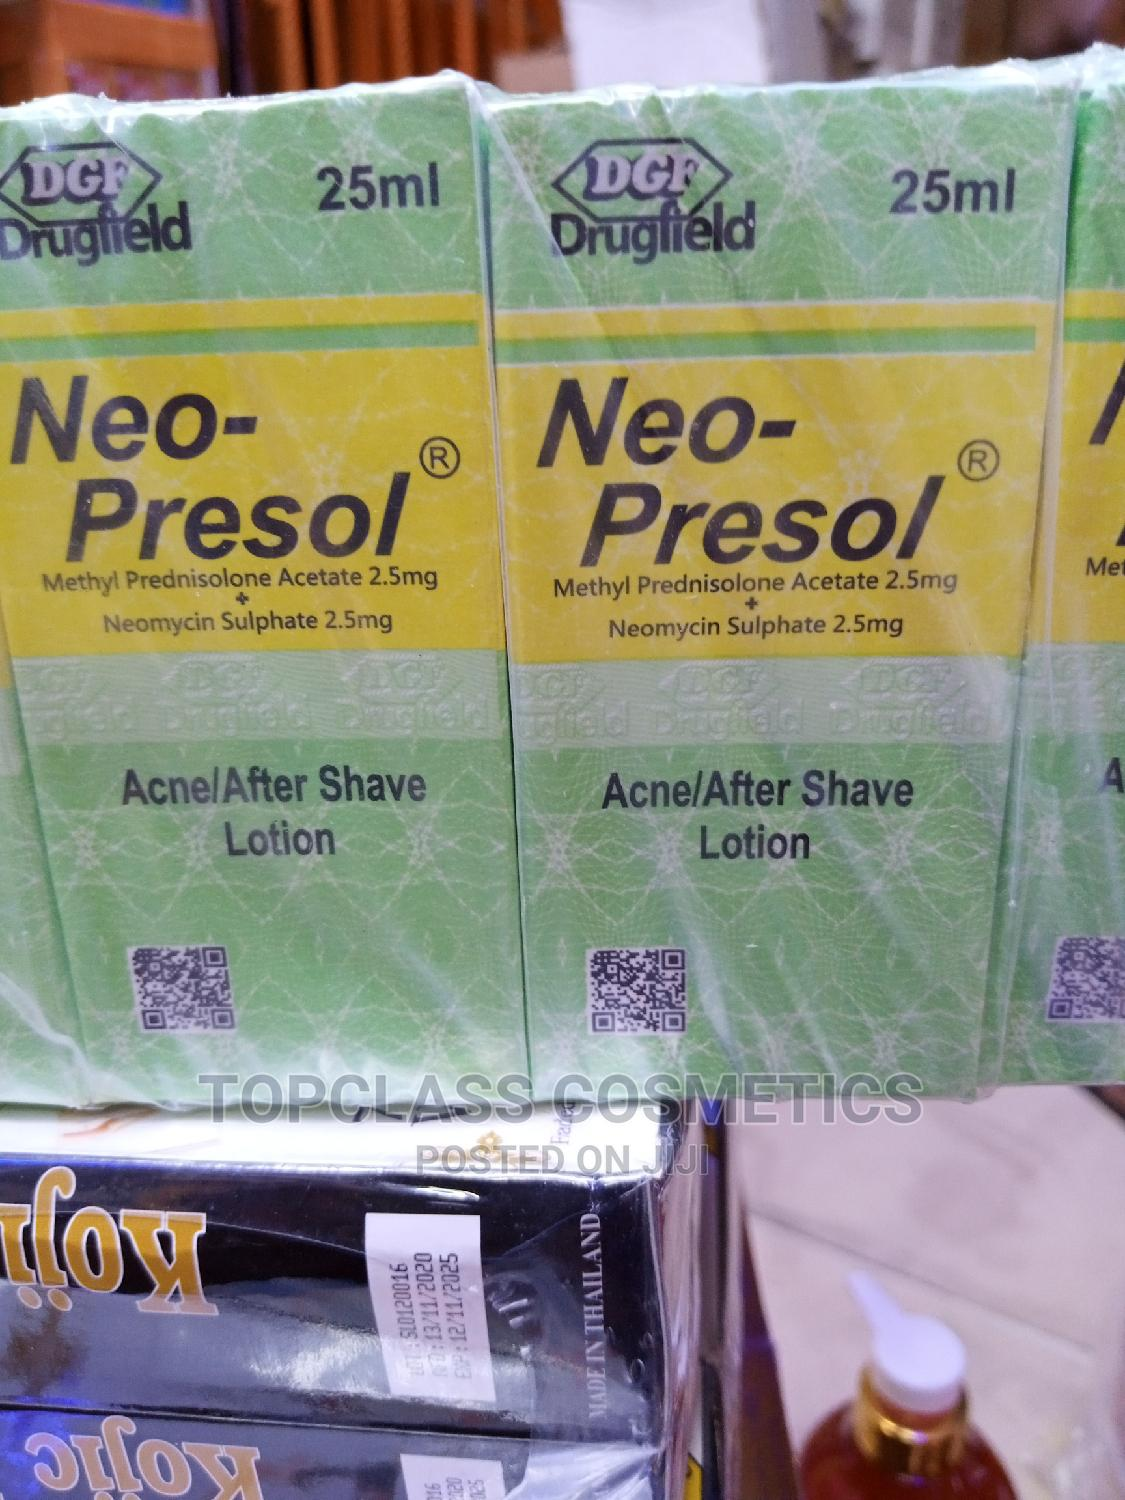 Archive: Neo Presol Acne/After Shave Lotion